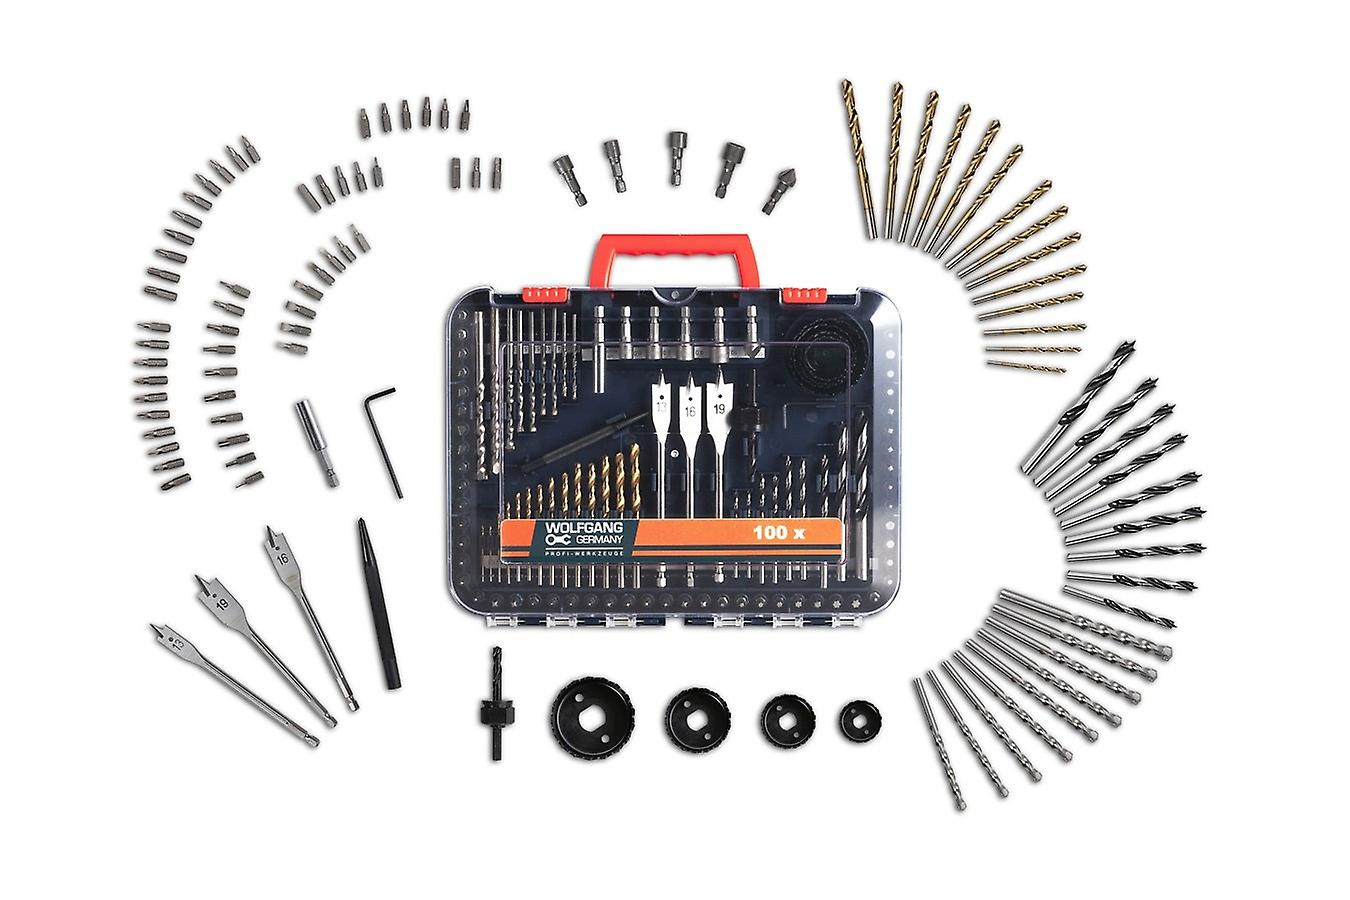 WOLFGANG Bit set for drills, for twist, wood, milling, stone and concrete drills, hole saw, attachments set carbon steel for cordless screwdrivers / drills, universal, 100 parts